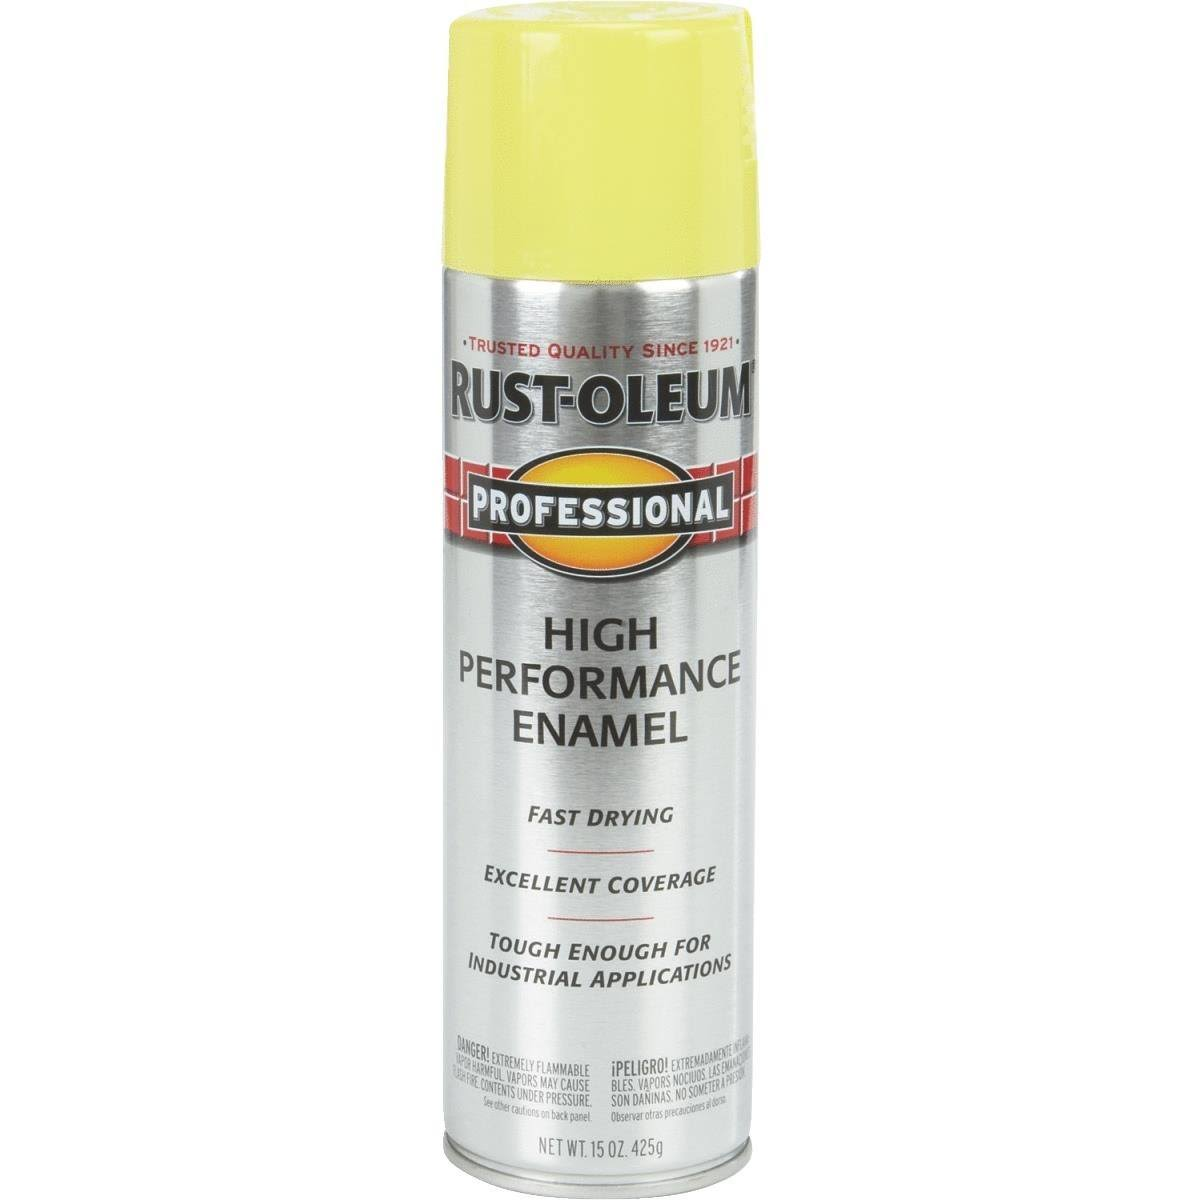 Rust-Oleum 7543838 Professional High Performance Enamel Spray Paint - Safety Yellow, 15oz